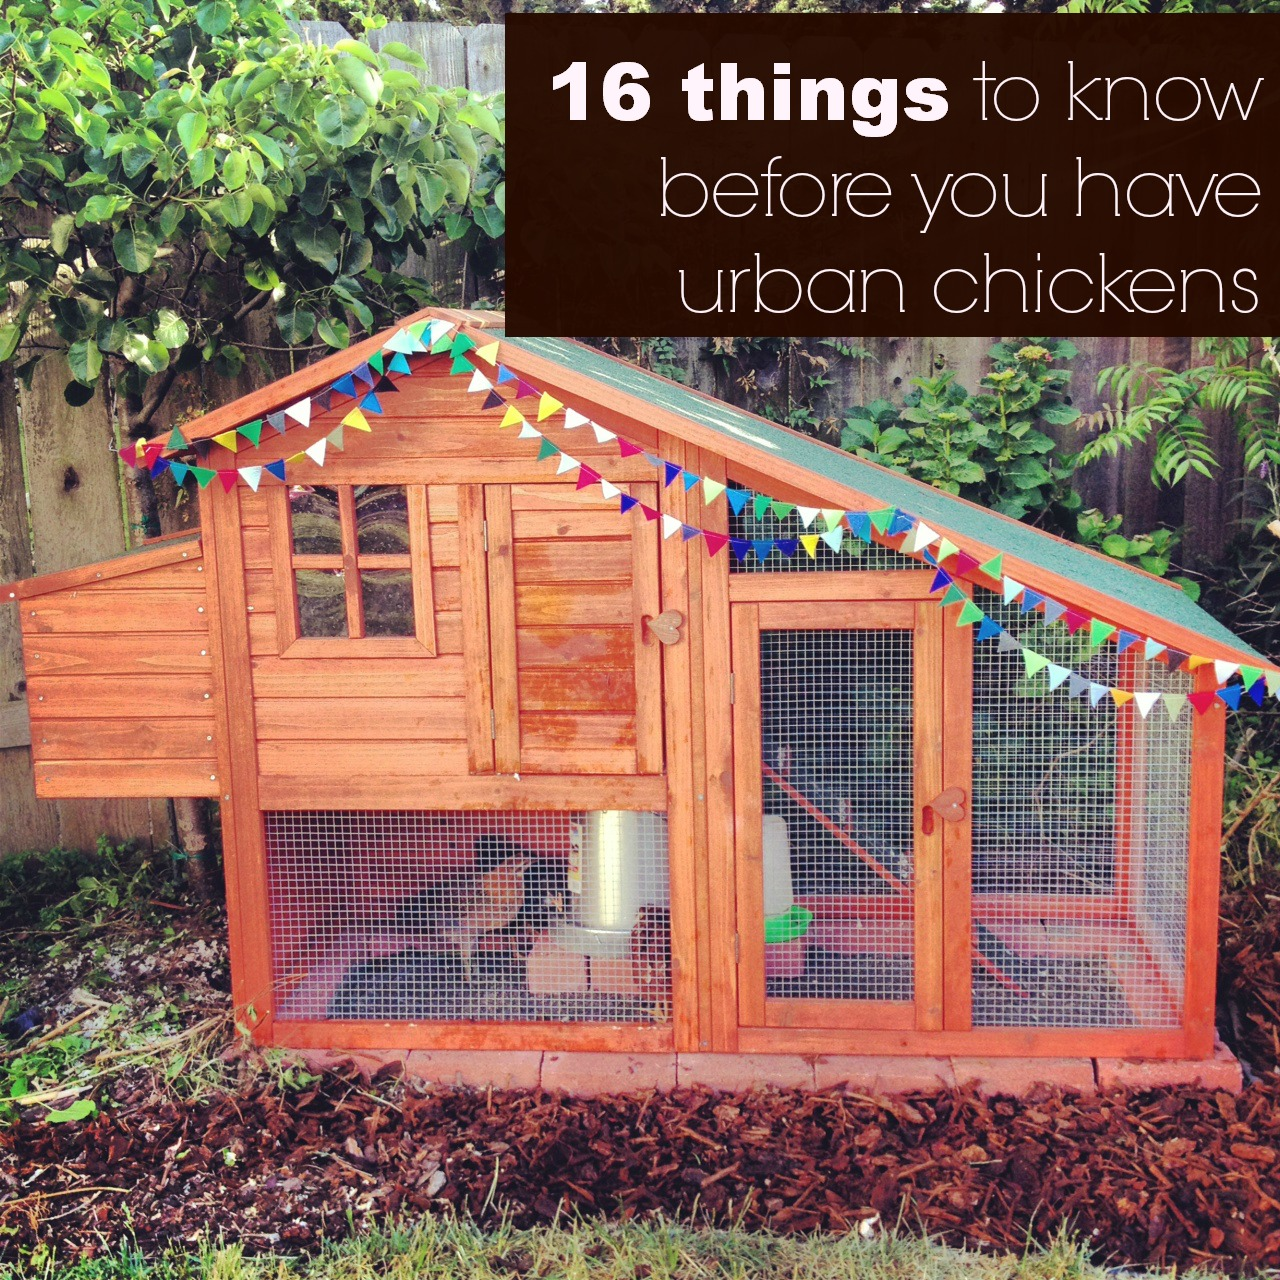 While I am well aware that there are plenty of super thorough websites all  about raising chickens, the problem with the Internet is that I often want  ... - 16 Things To Know Before You Have Urban Chickens Life Rearranged